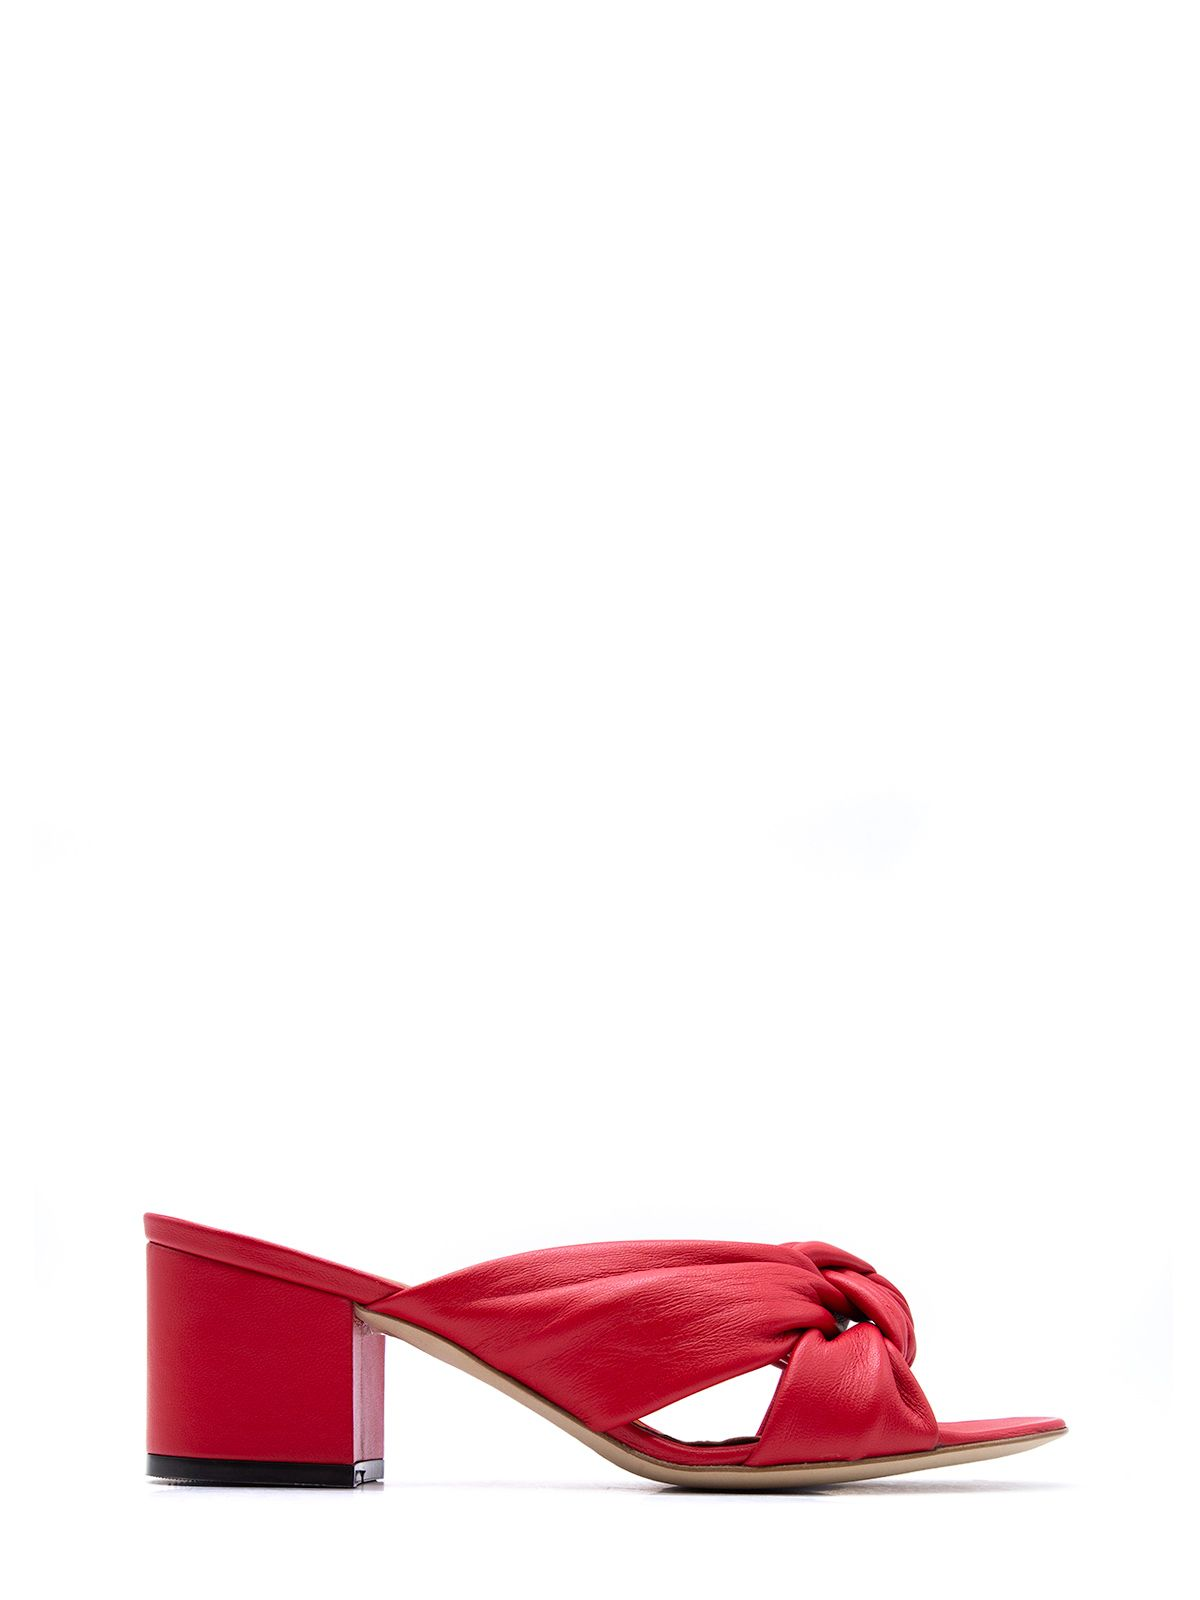 Via Roma 15 RED LEATHER SANDALS